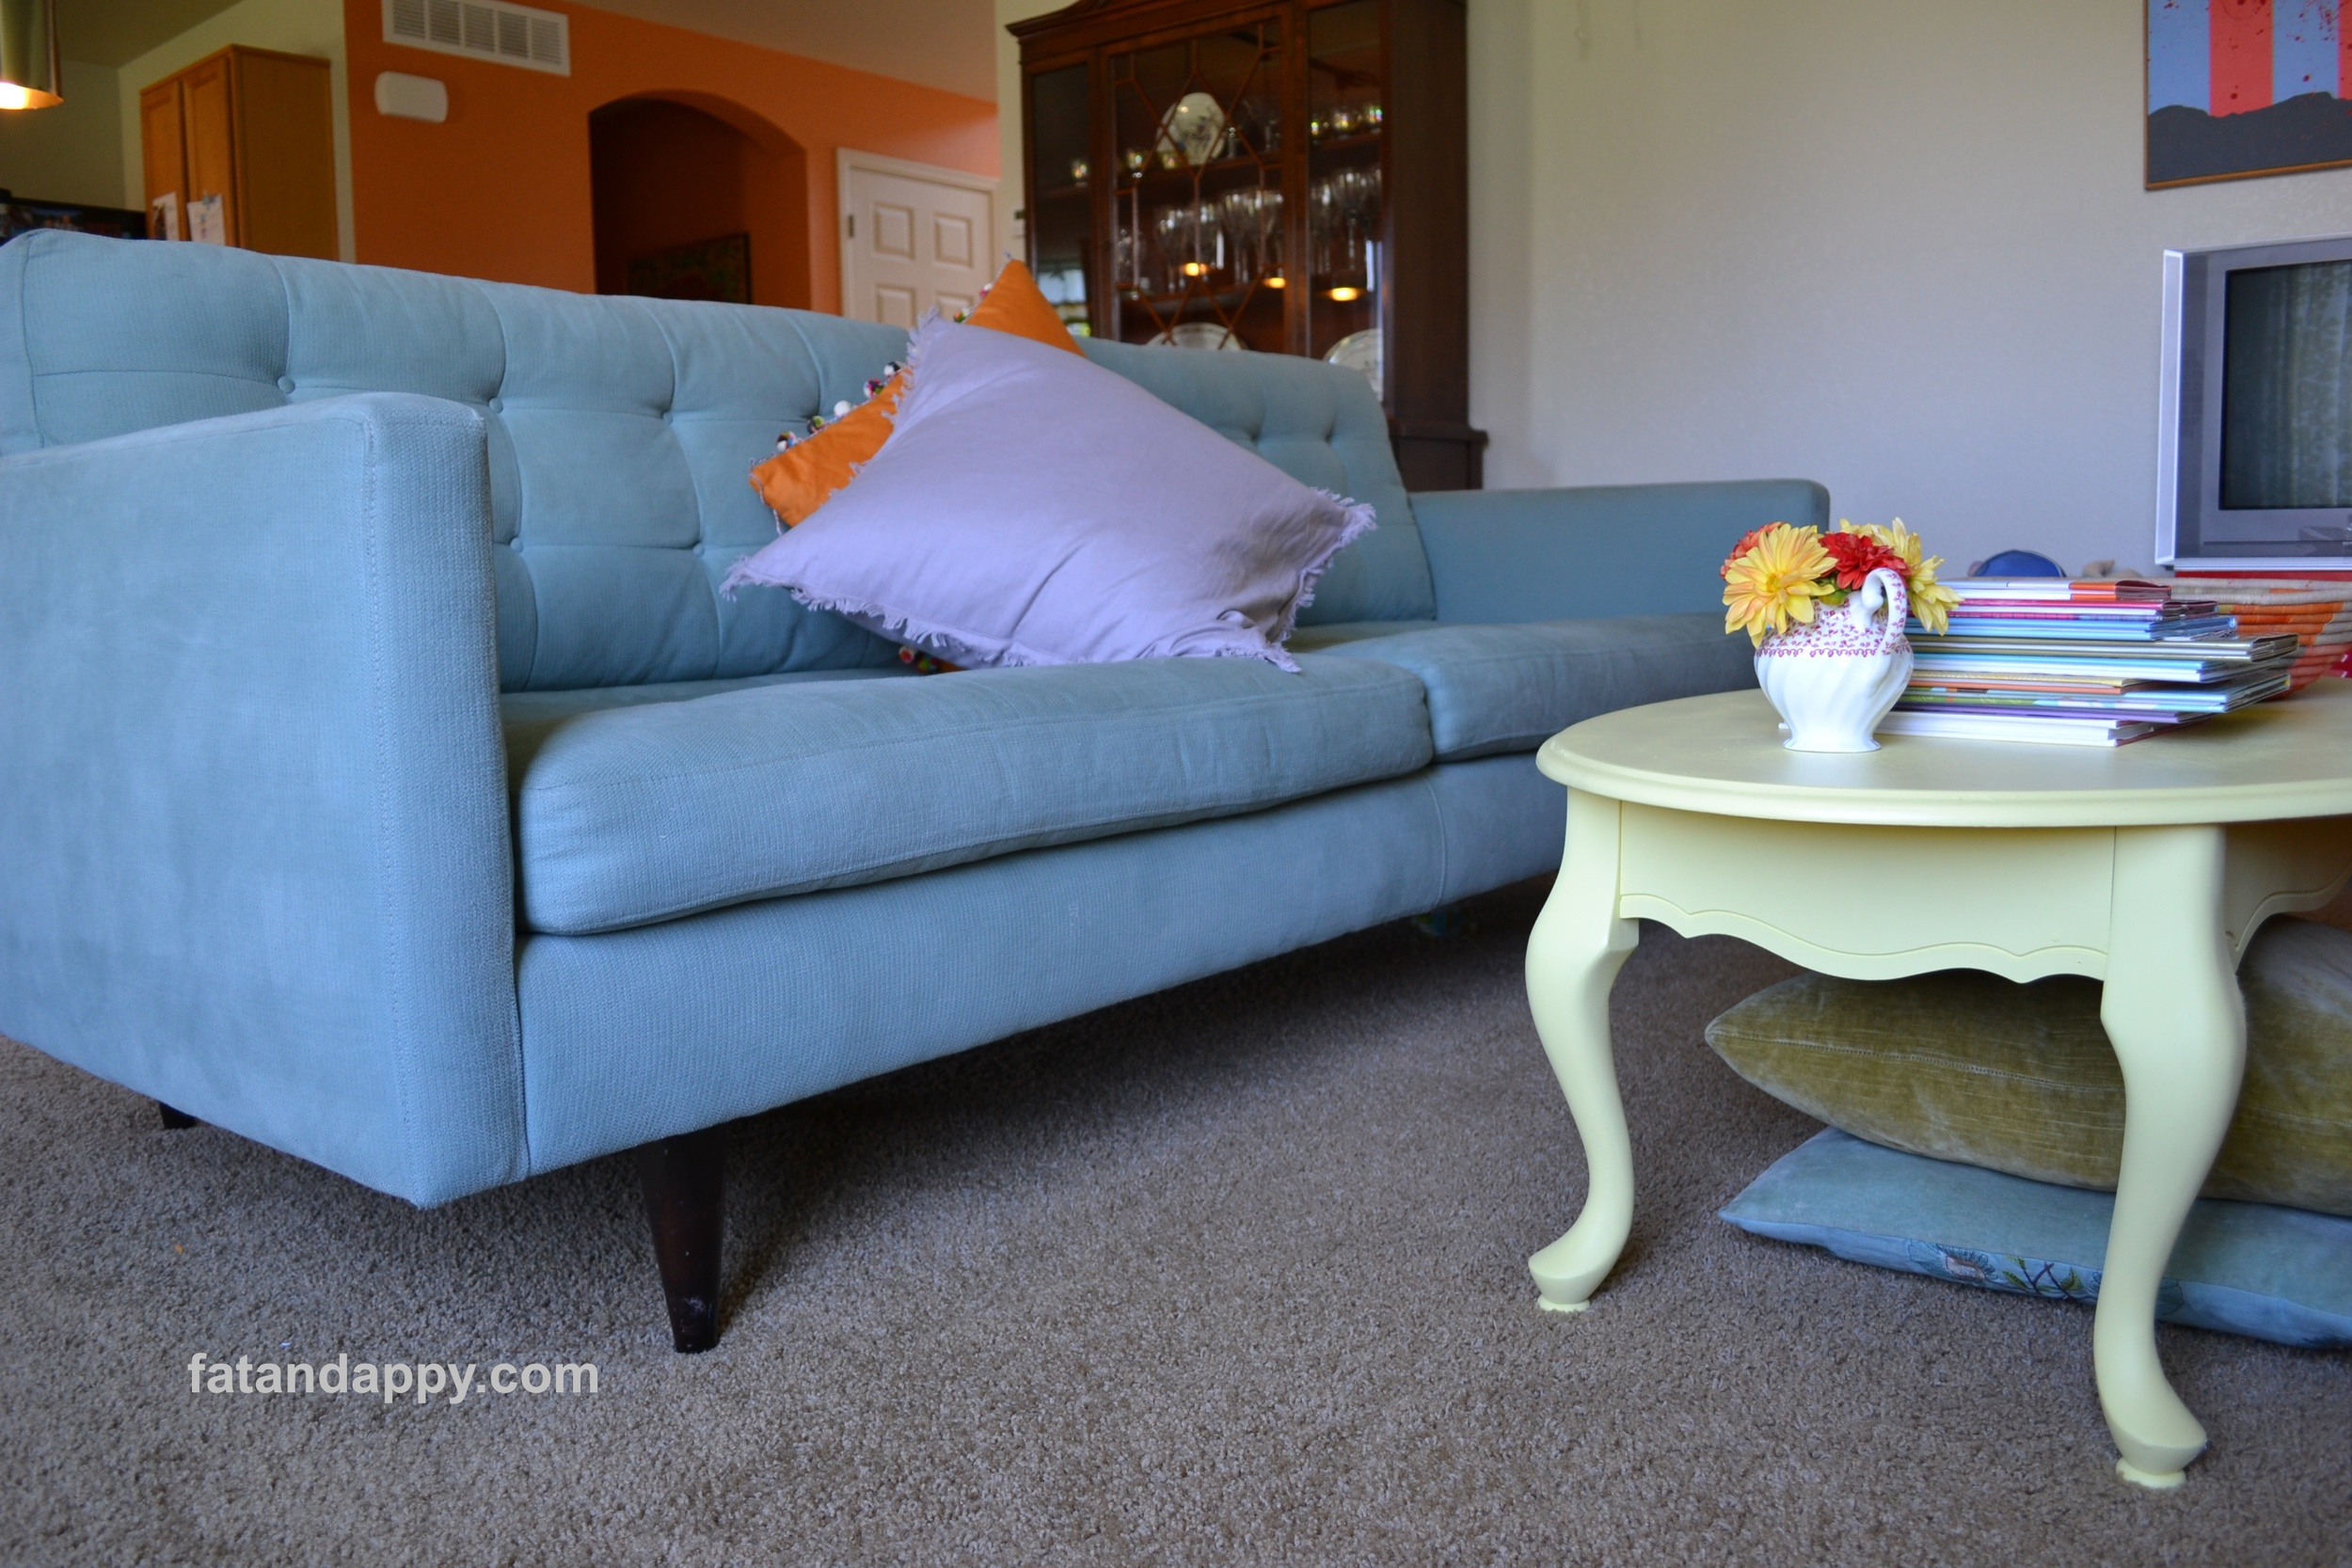 A Petrie couch with a yellow coffee table